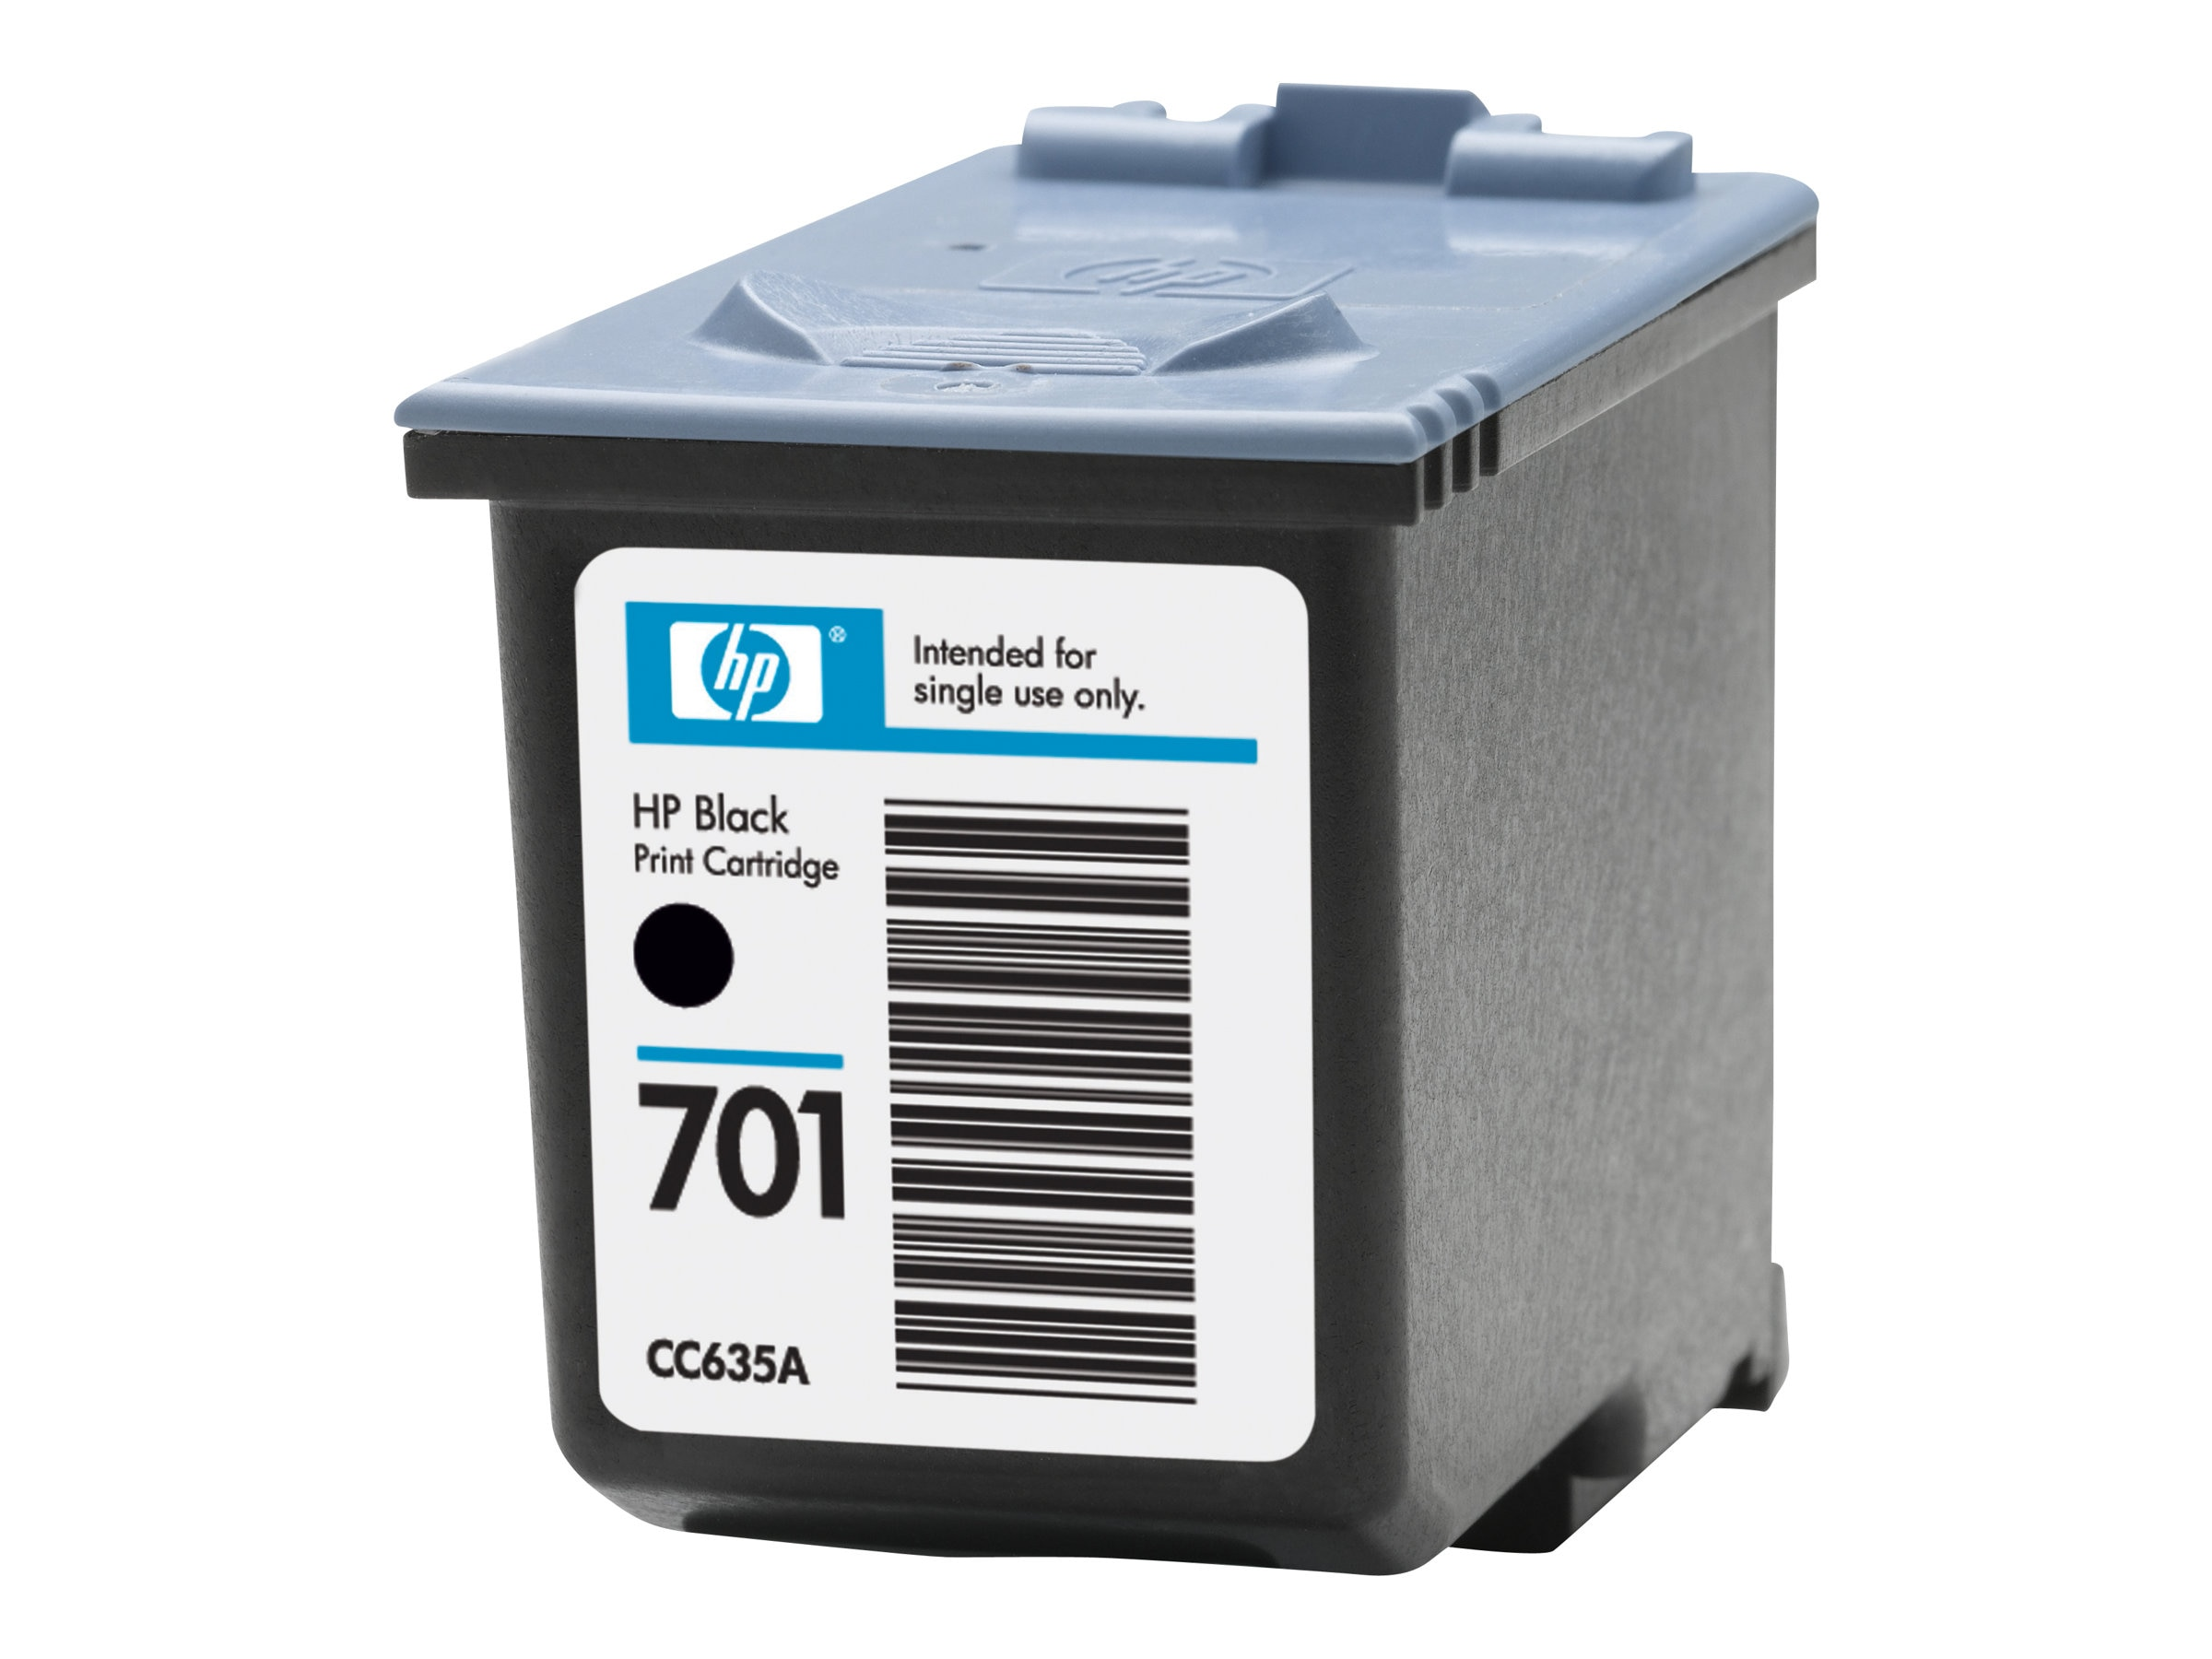 hp 640 fax machine ink cartridge